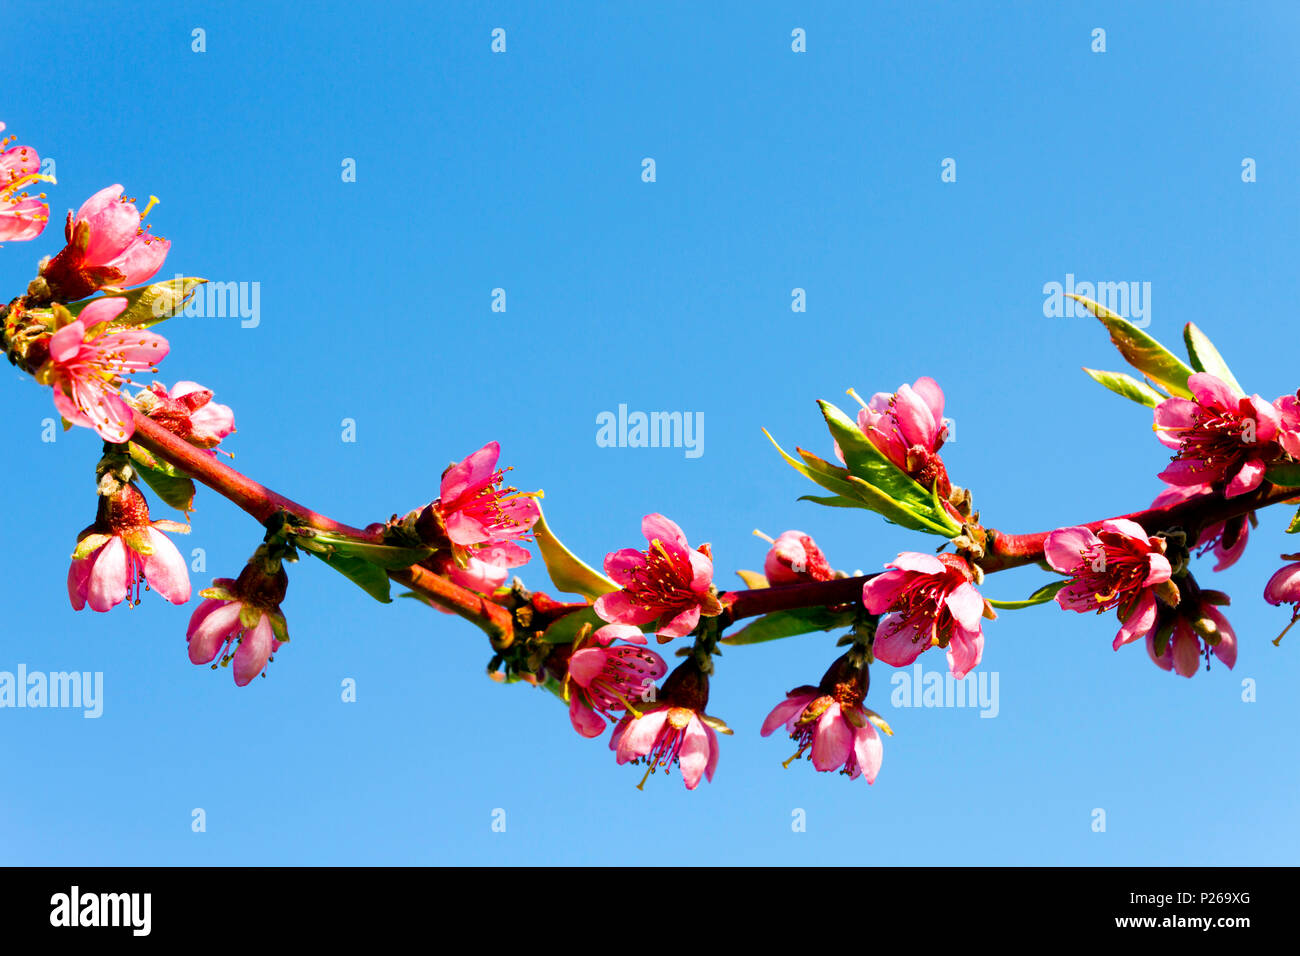 Peach blossom flower with clear blue sky background in an orchard in the Okanagan Valley, British Columbia, Canada. - Stock Image